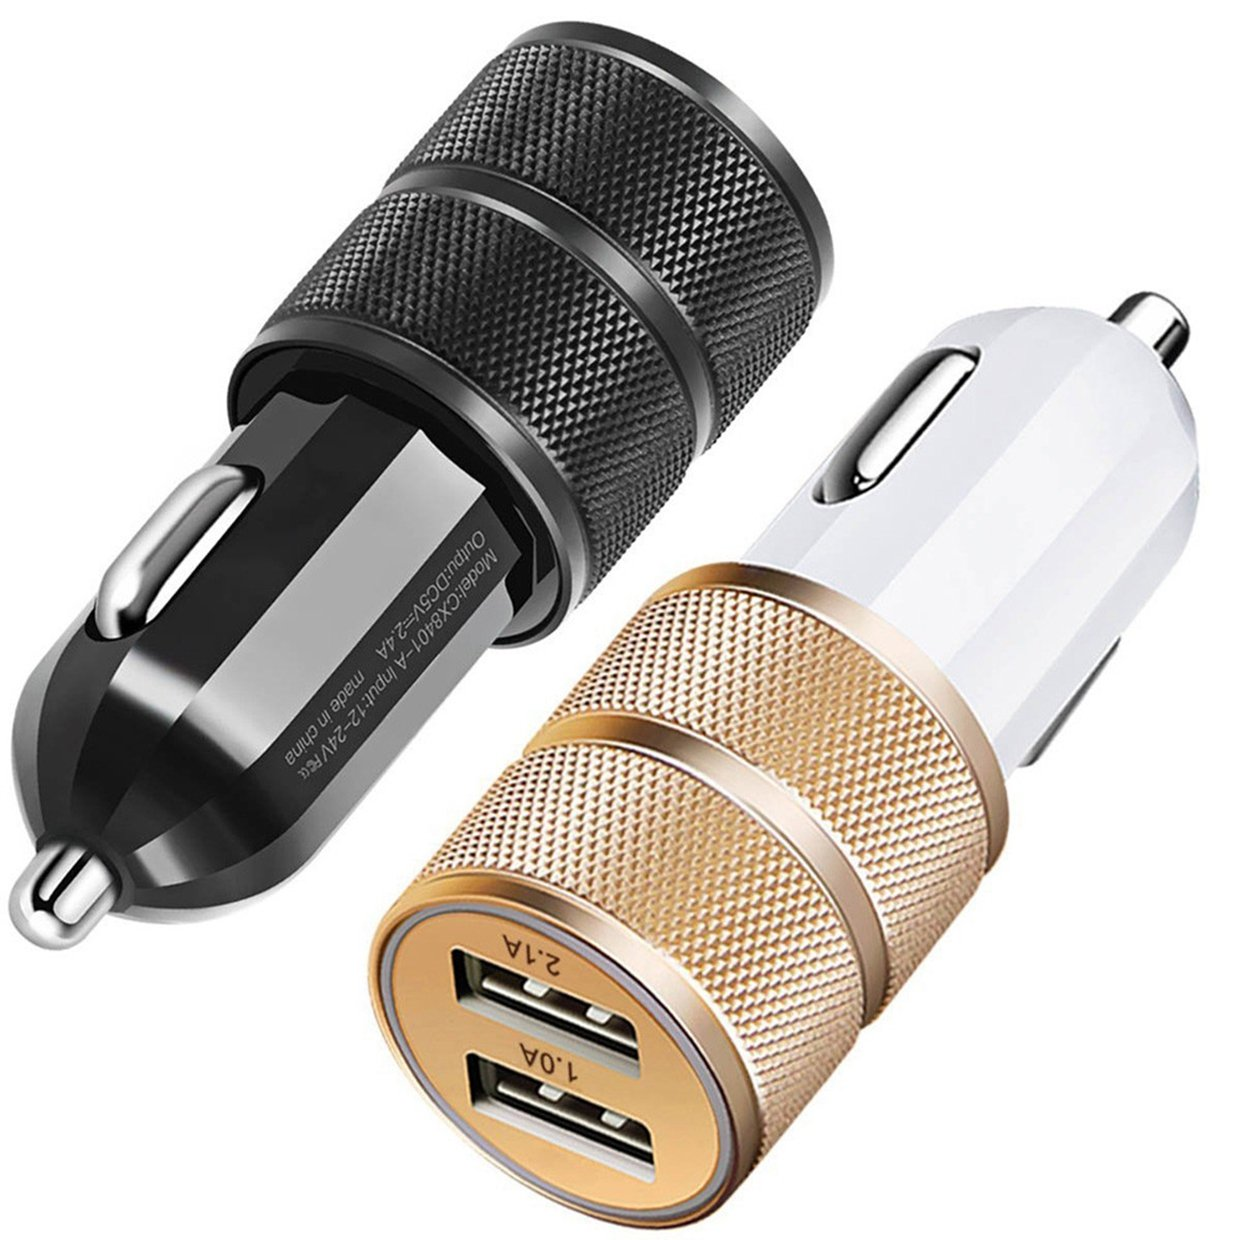 Cargador de Coche EUzeo DC 1A / 2.1A / DC 12-24V / 2Port USB / 2 piezas (dorado + negro) / 12V / 24V DC /Coche Universal Smart Quick Charge Adaptador de cargador Car Fast Charger para Apple iPhone 6 6s Plus 5 5S 4 4S, Ipad mini 1 2 3 4, Samsung Galaxy S5 S